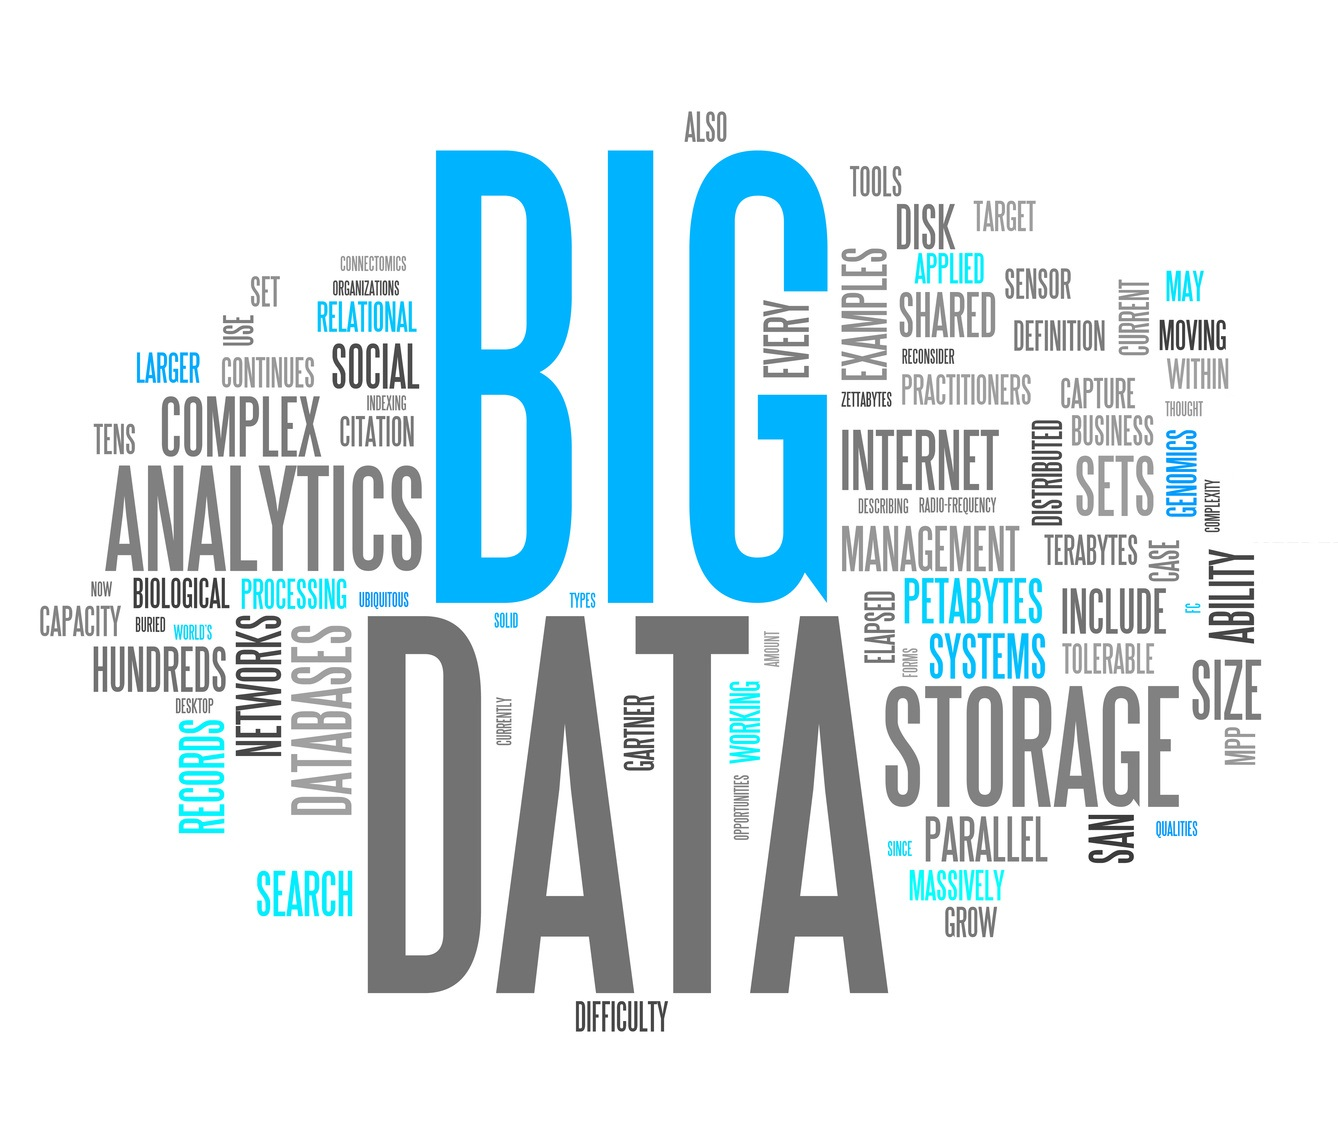 Word Cloud « Big Data »